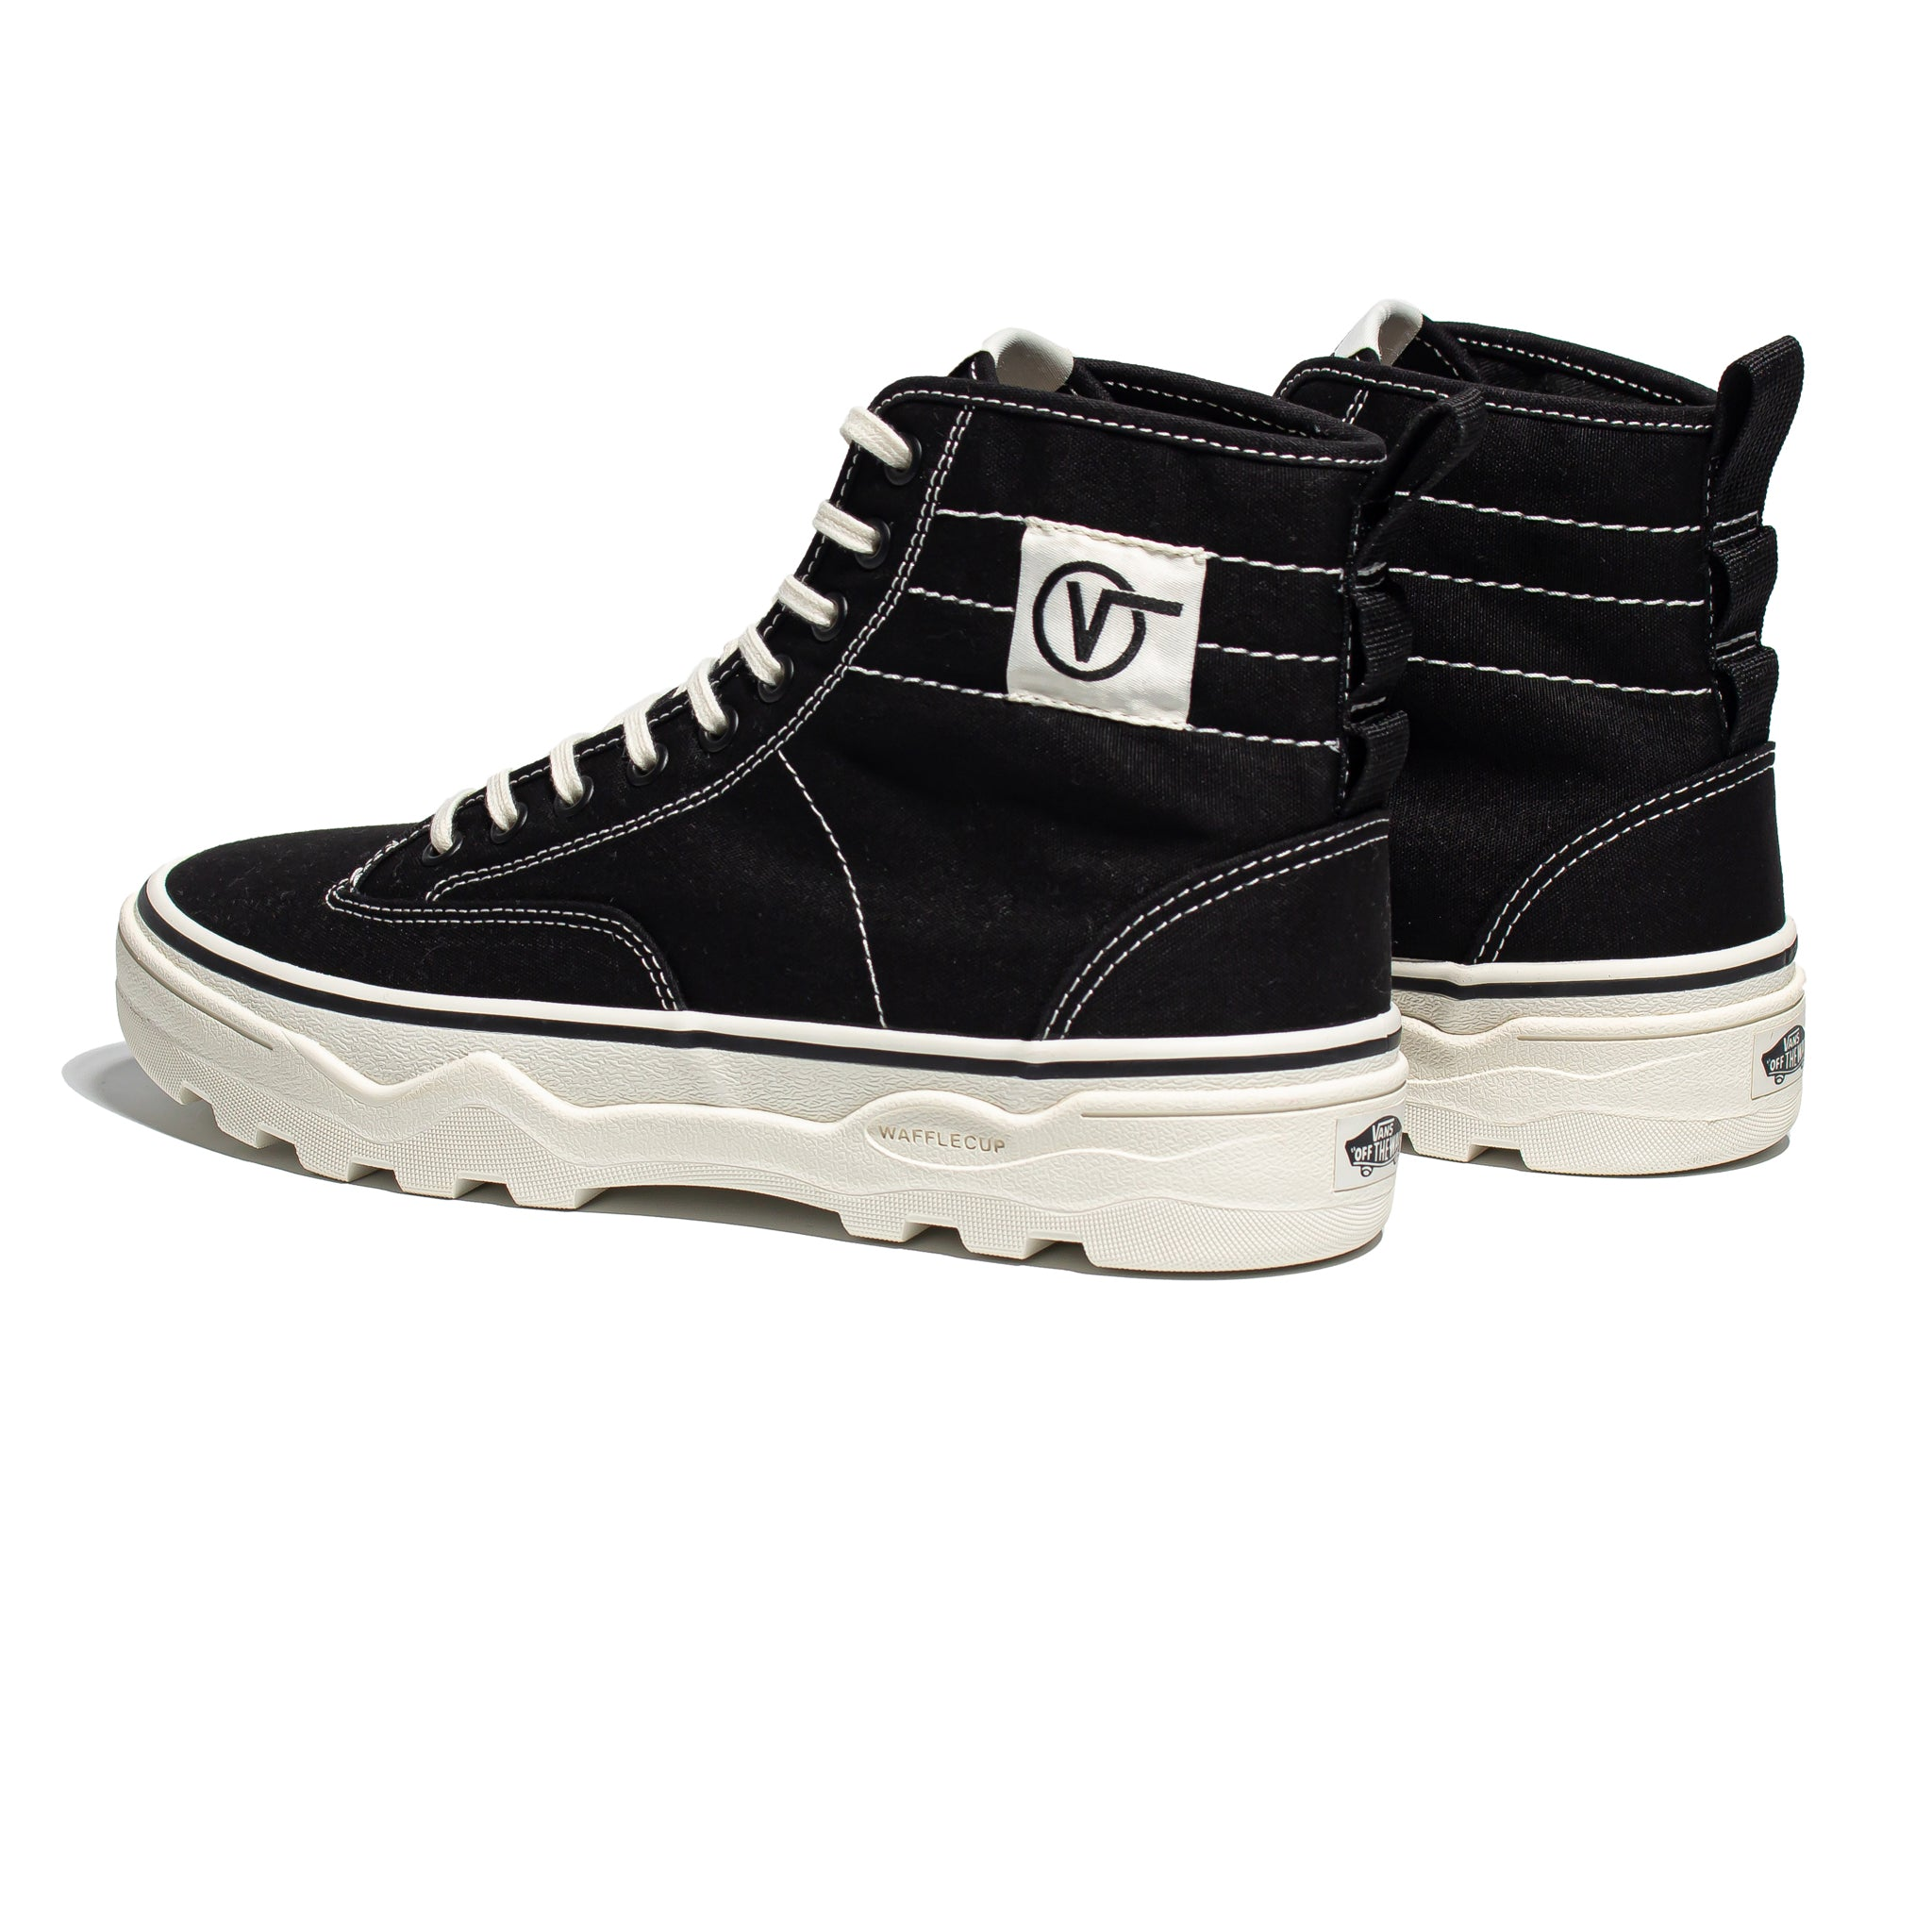 Vans Sentry WC Canvas Black/Marshmallow